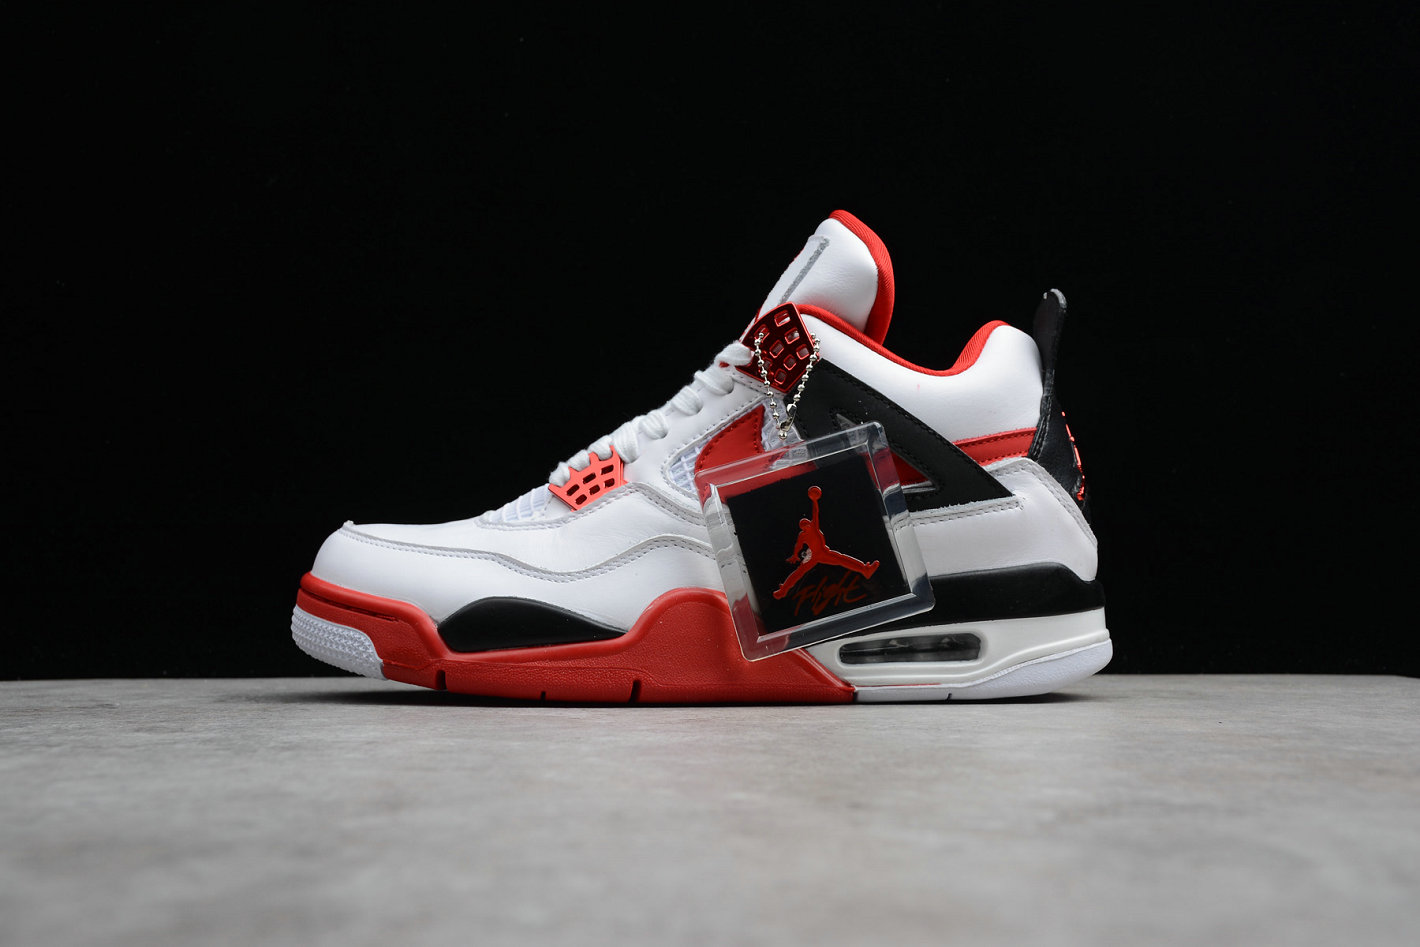 Cheap Nike Air Jordan 4 Retro Fire Red 836011-107 Han Yubai Black Campus Red Noir Rouge